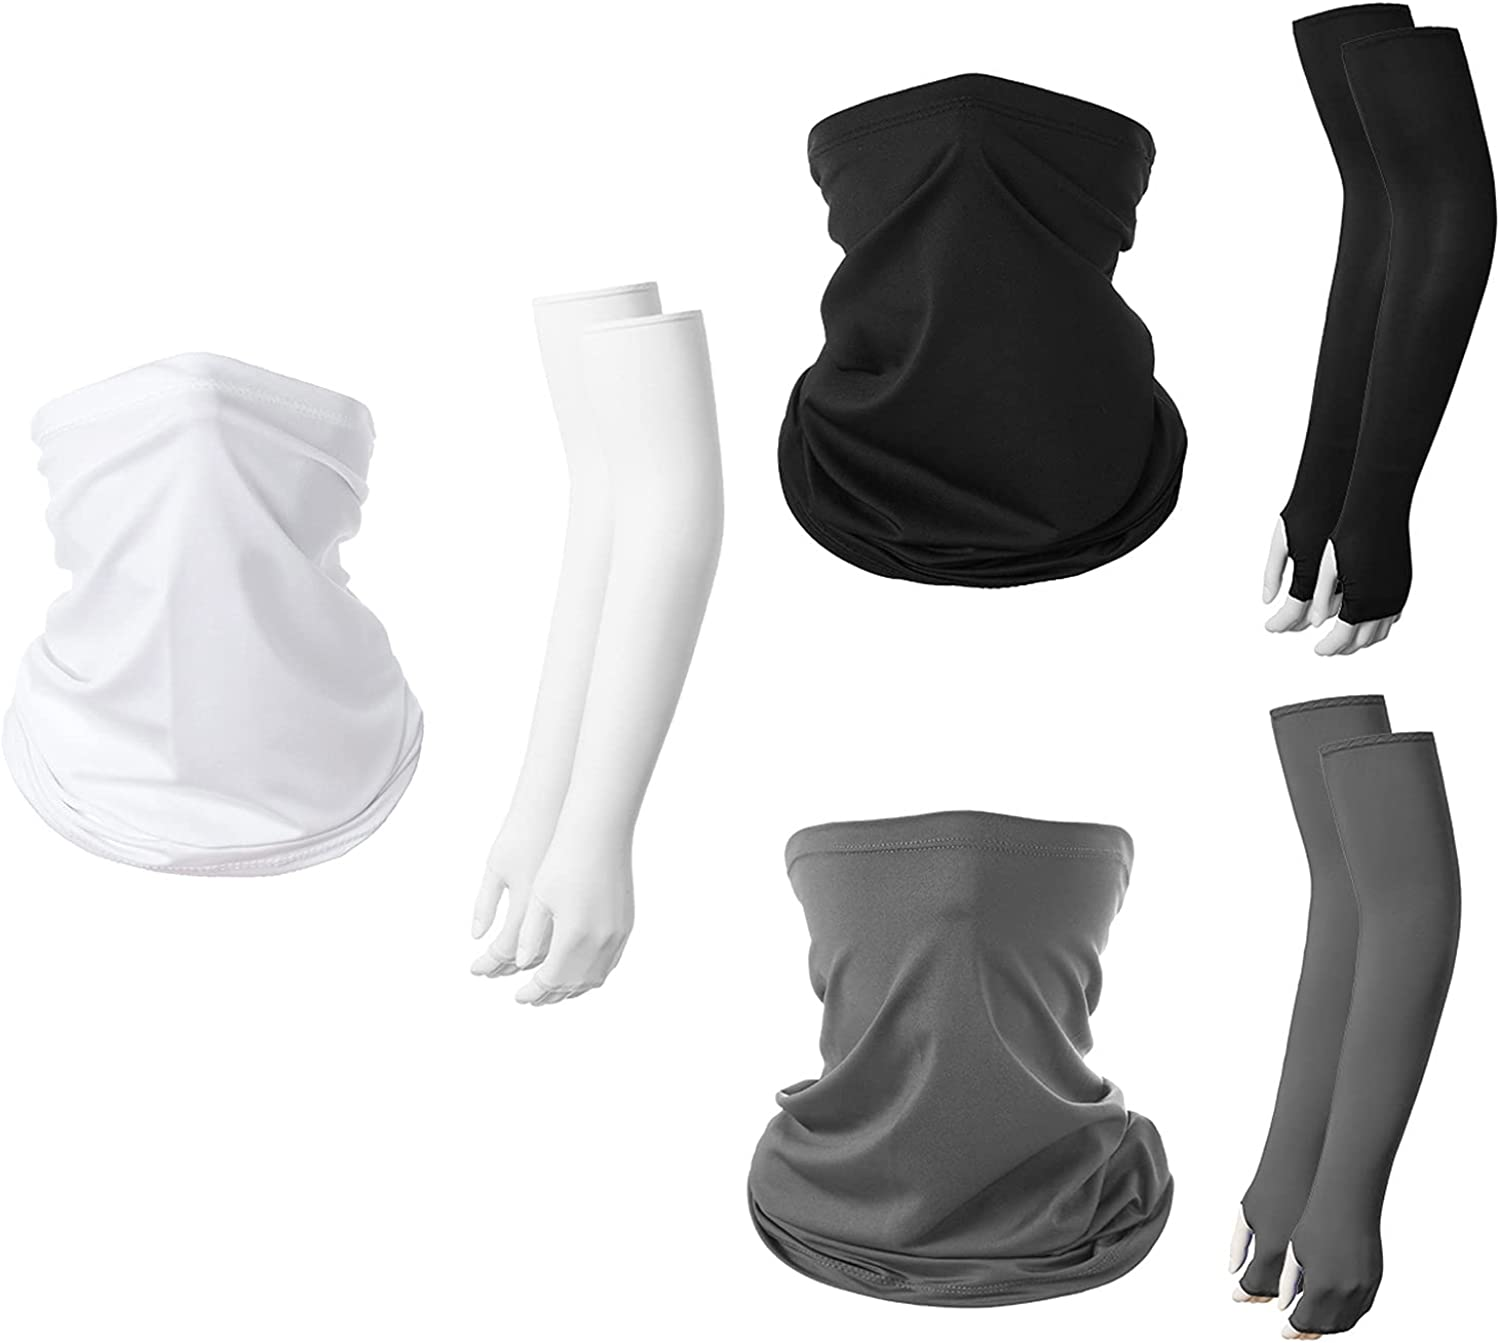 3 Sets UV Sun Protection Arm Covering with Product Bandana Face Sleeves New arrival